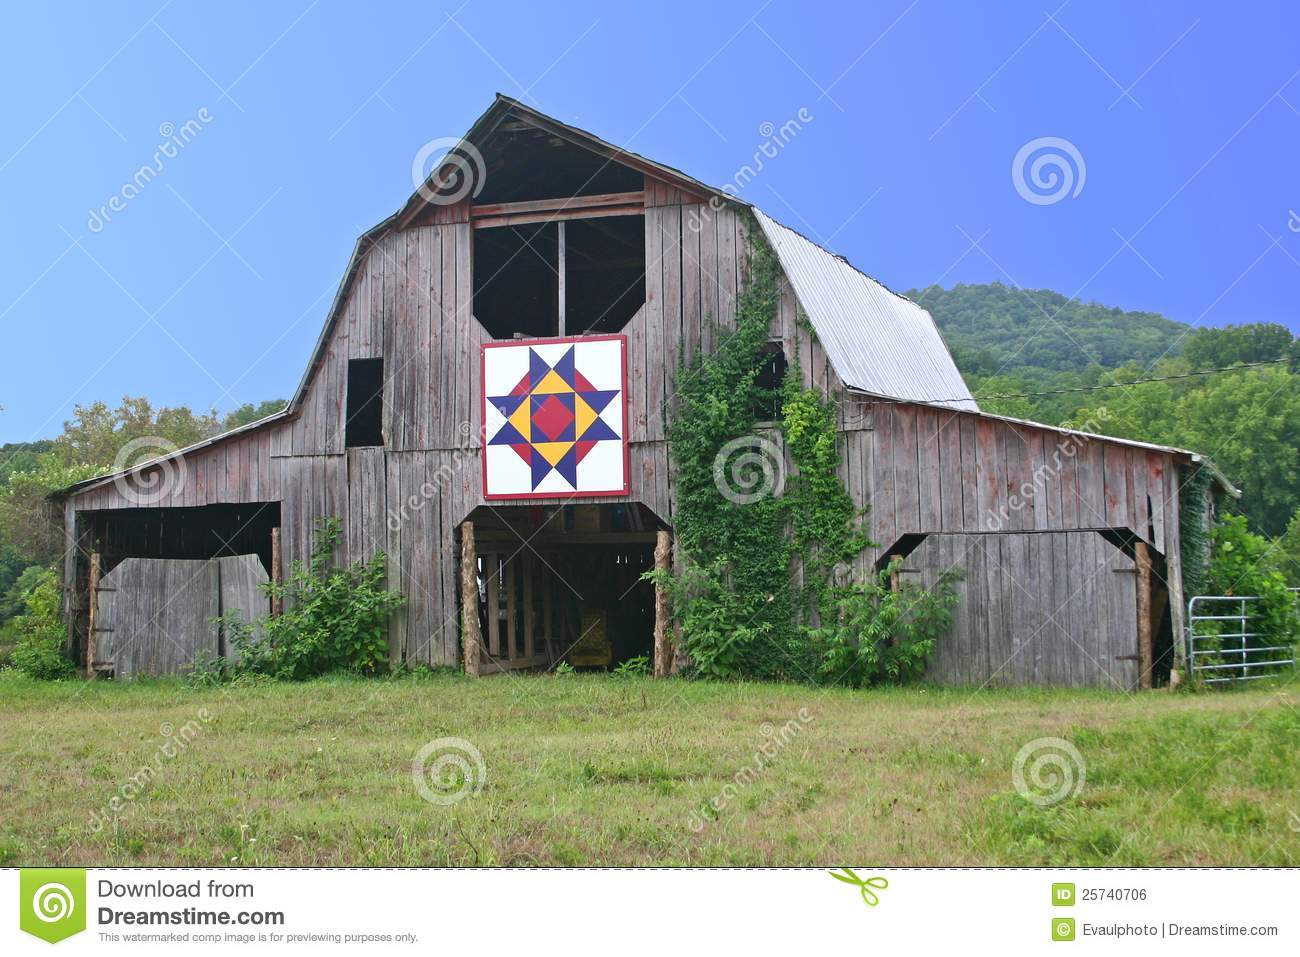 Quilt Barn in Tennessee